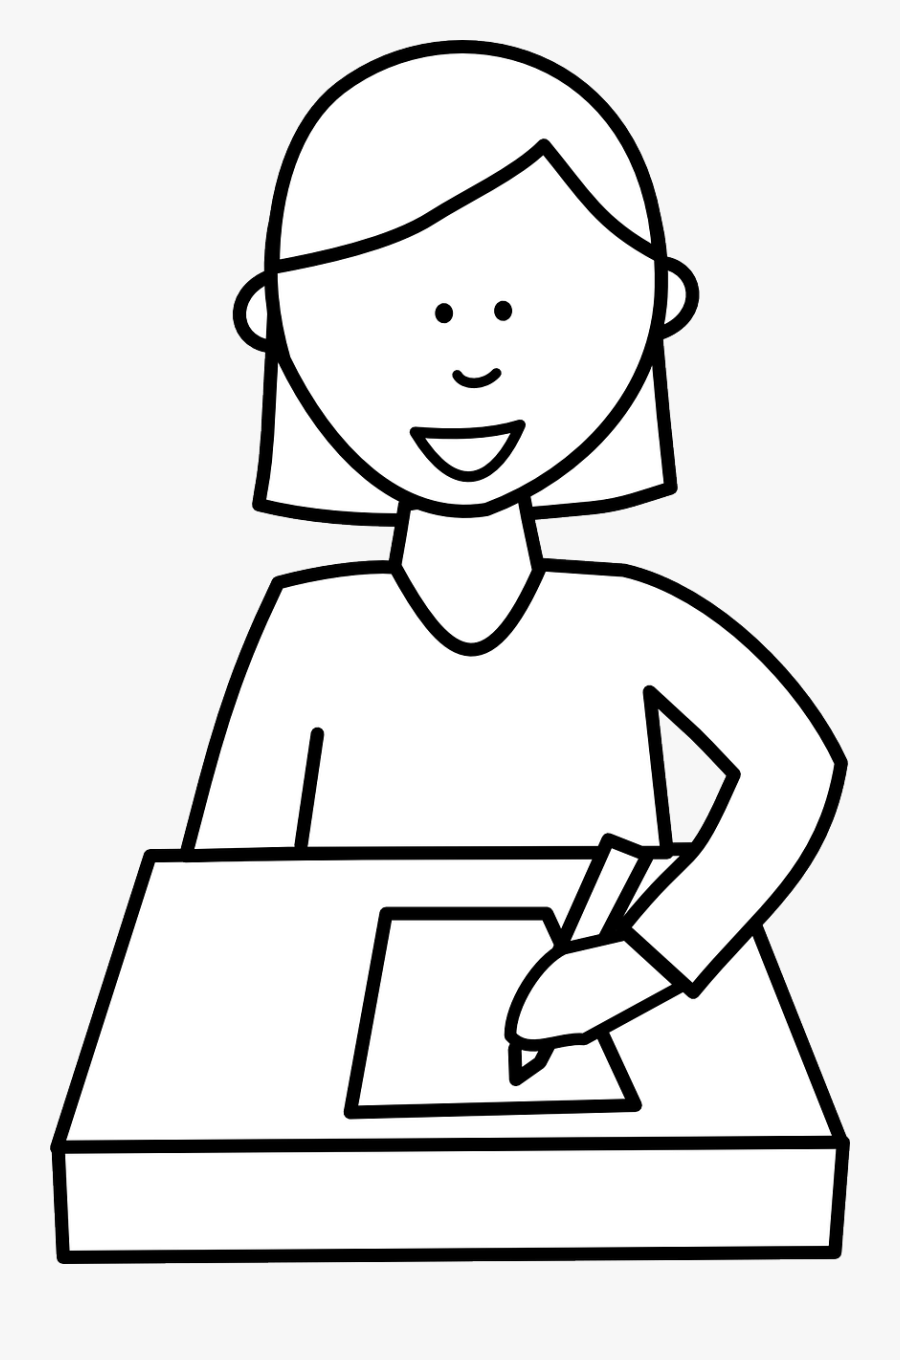 Writing Cliparts - Student Writing Clipart Black And White, Transparent Clipart